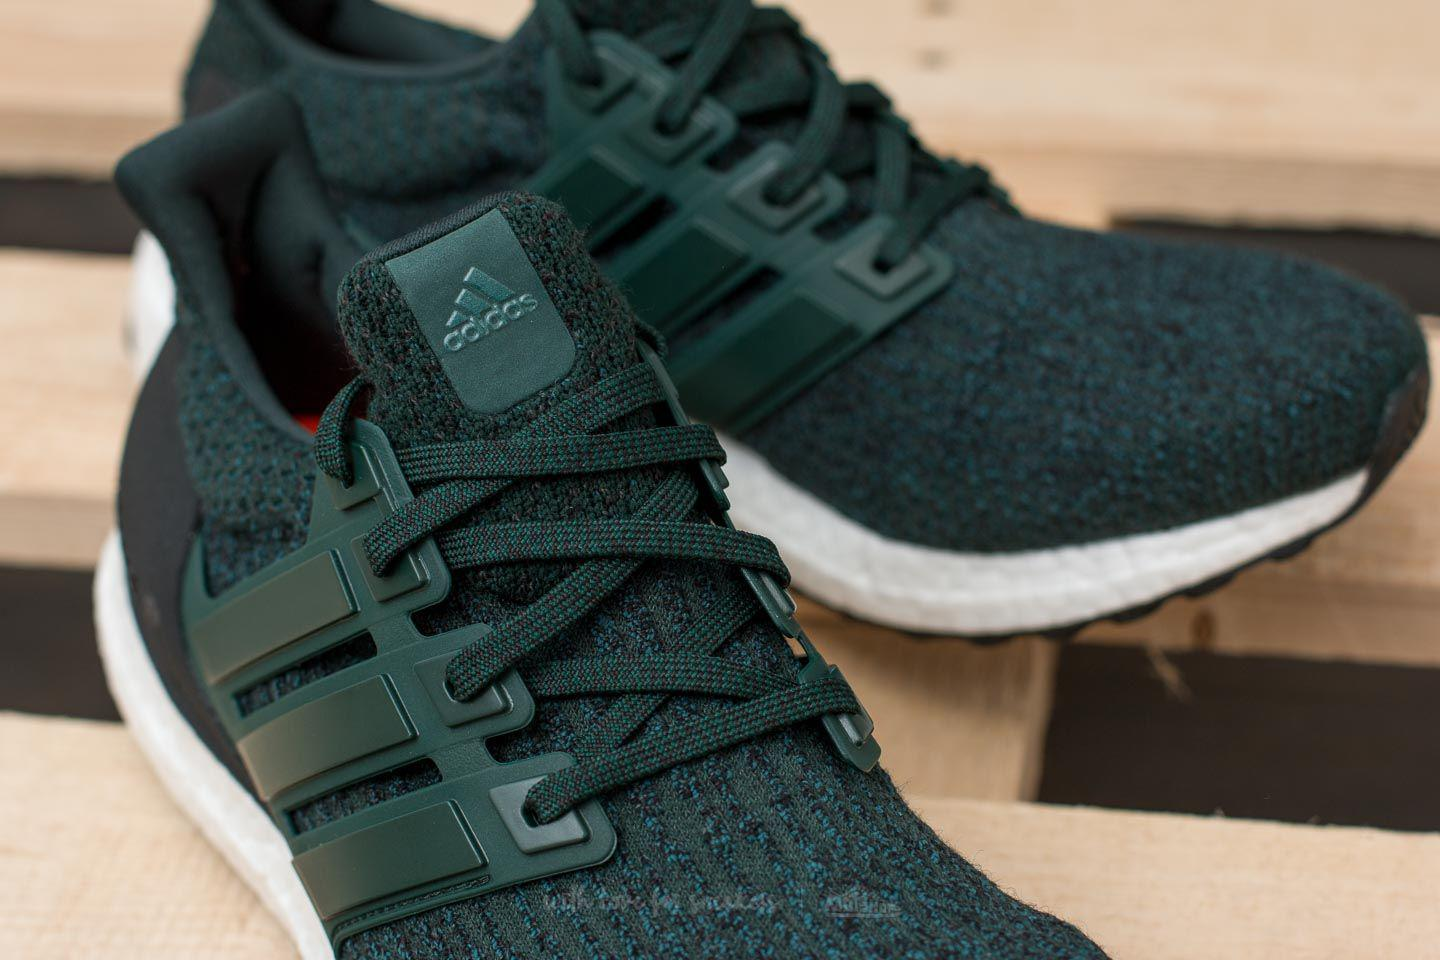 online retailer 96d62 92683 sale adidas ultra boost forest green 677e7 189f2 clearance lyst footshop adidas  ultraboost green night core black for men 5b1fe c4cae